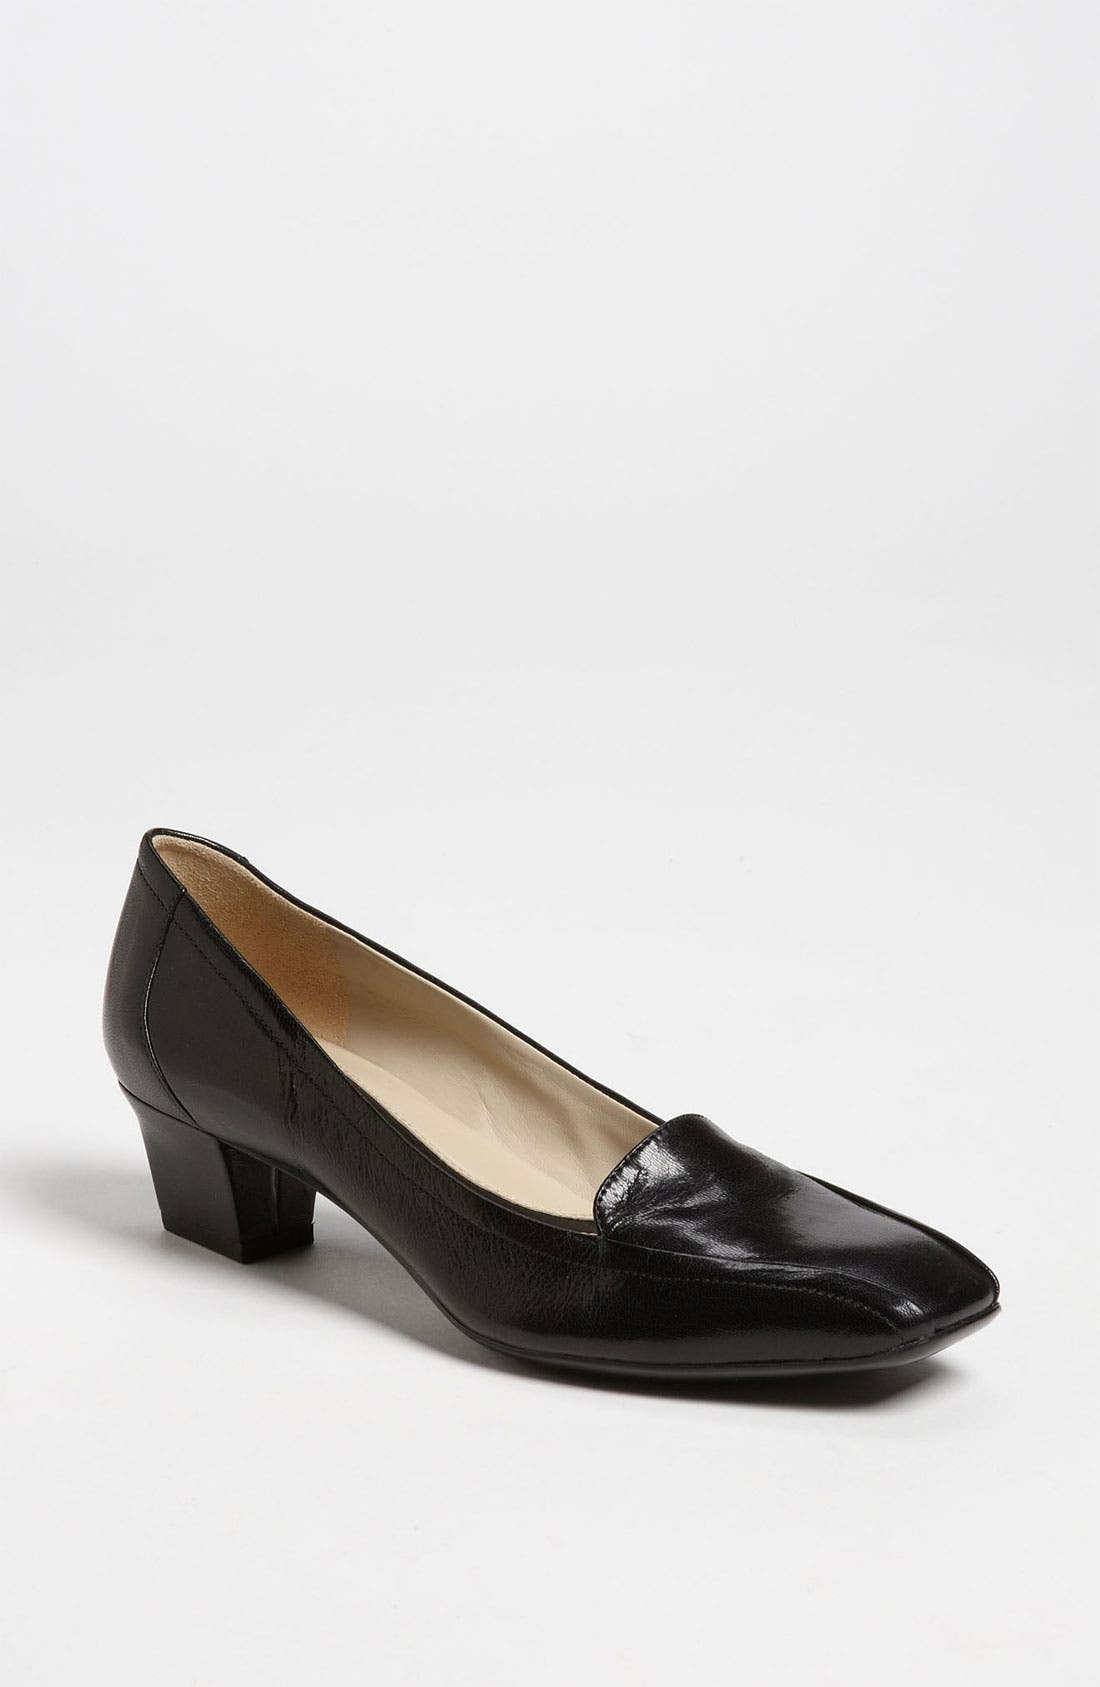 Alternate Image 1 Selected - Naturalizer 'Fuller' Pump